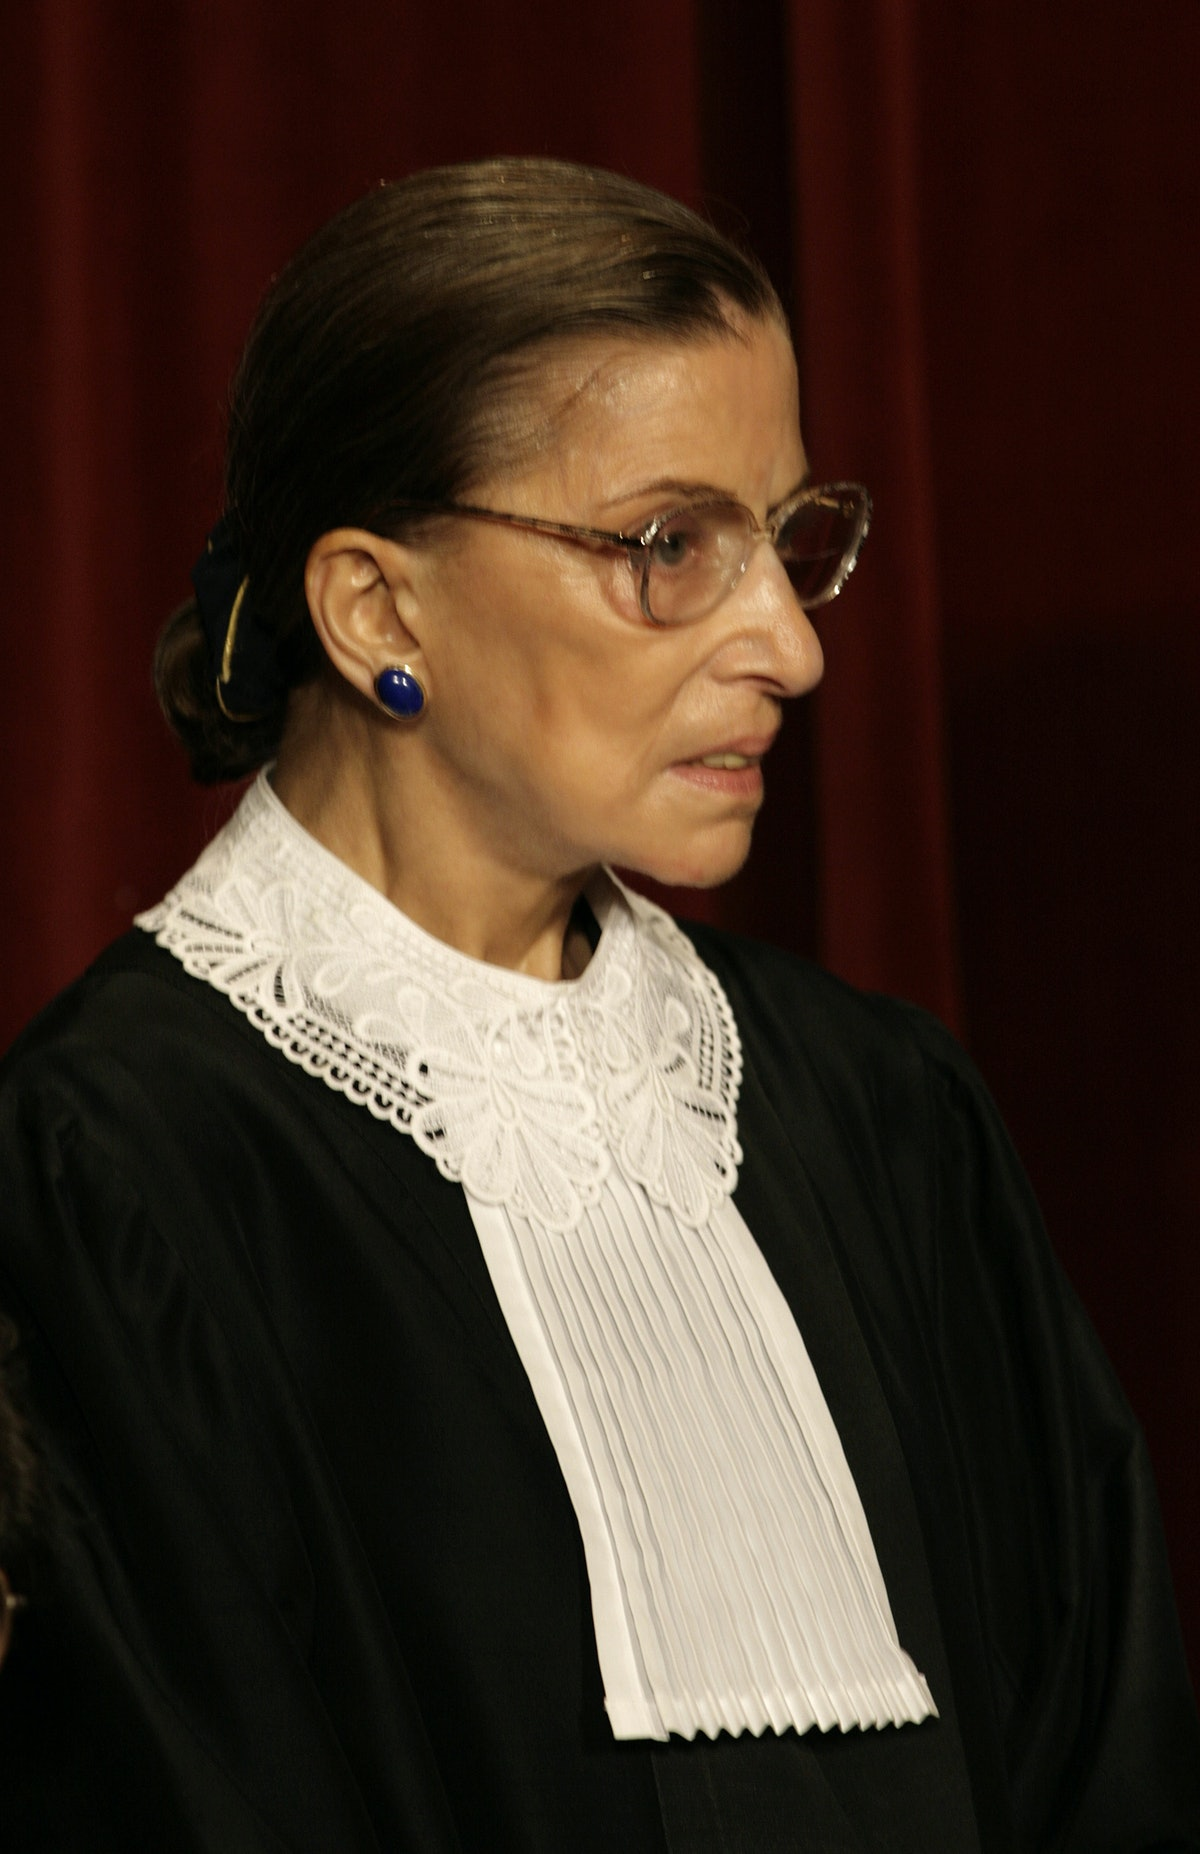 Here's how Ruth Bader Ginsburg and Marty Ginsburg met and fell in love.